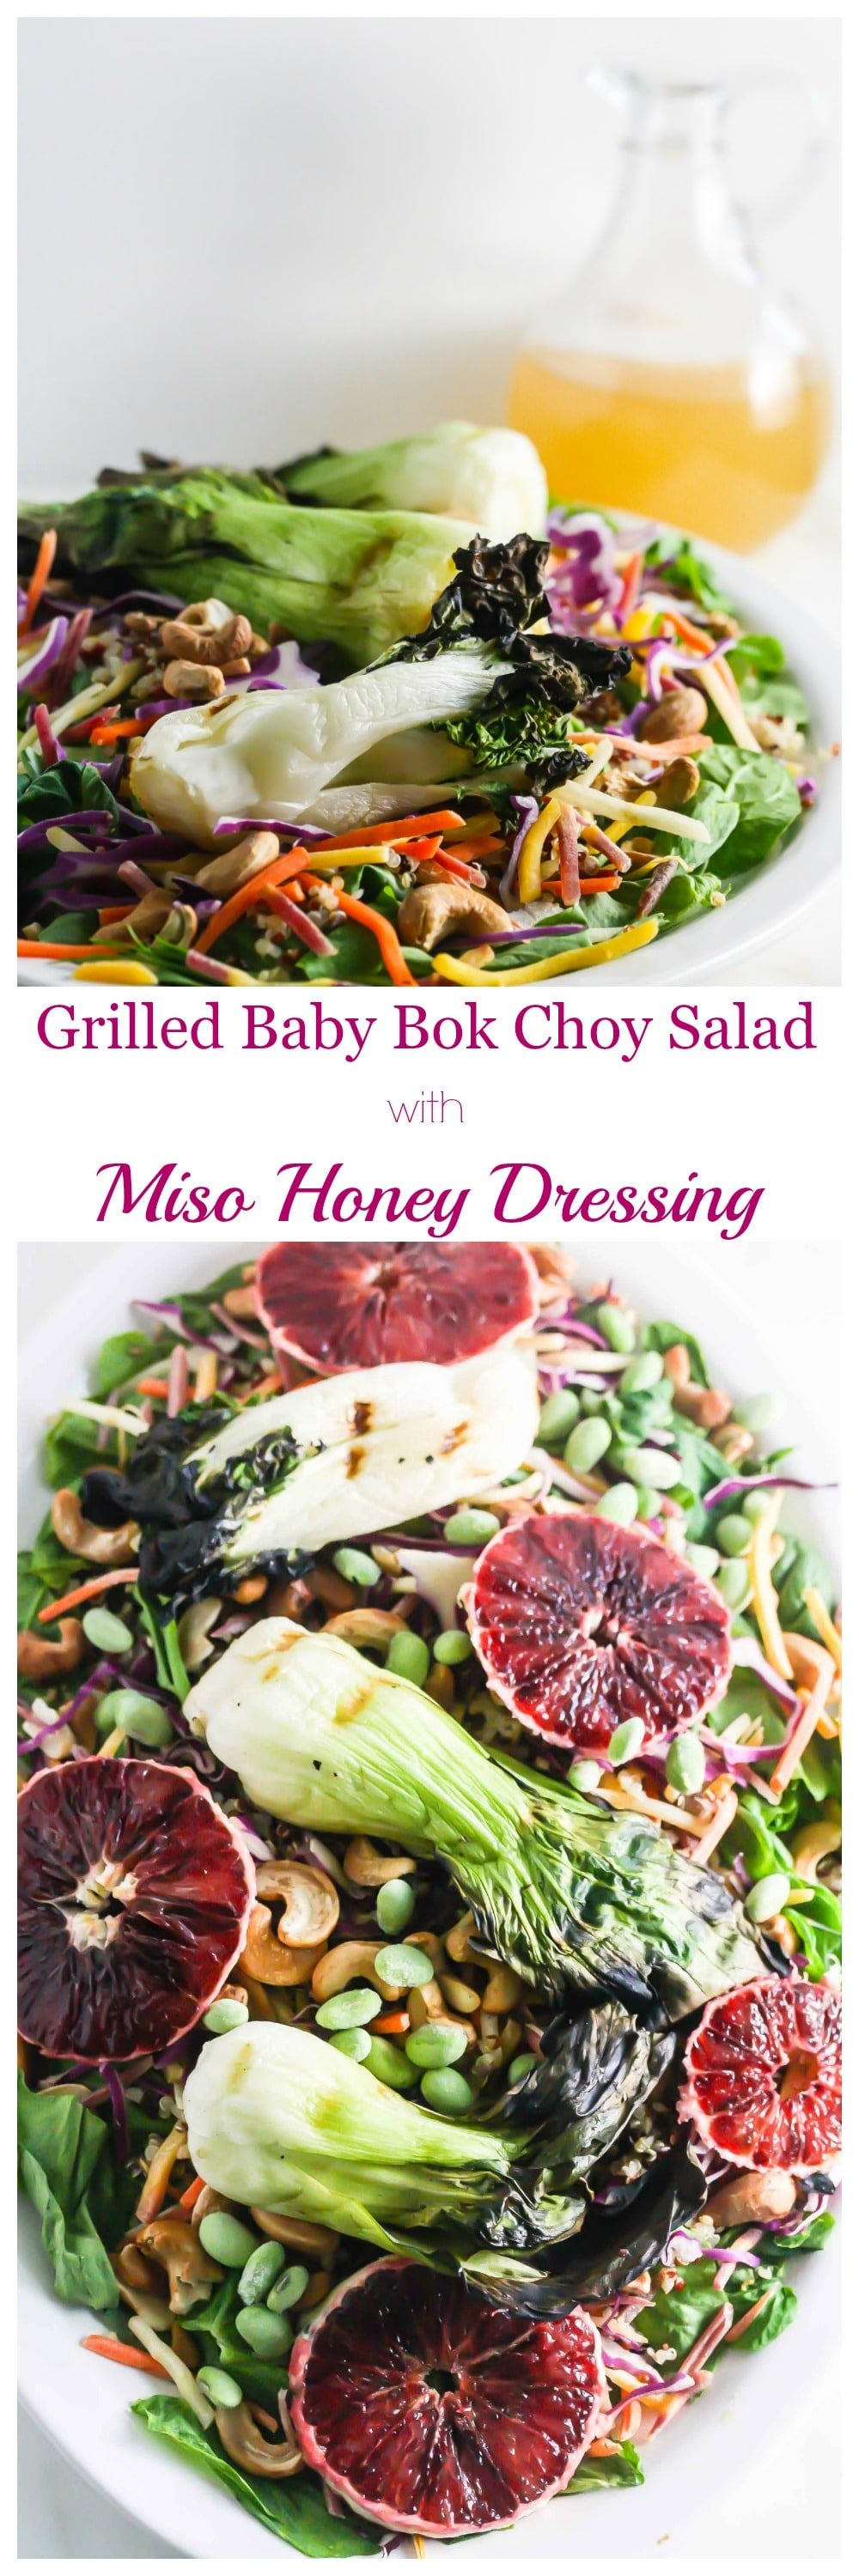 Grilled Baby Bok Choy Salad with Honey Miso Dressing from Lauren Kelly Nutrition